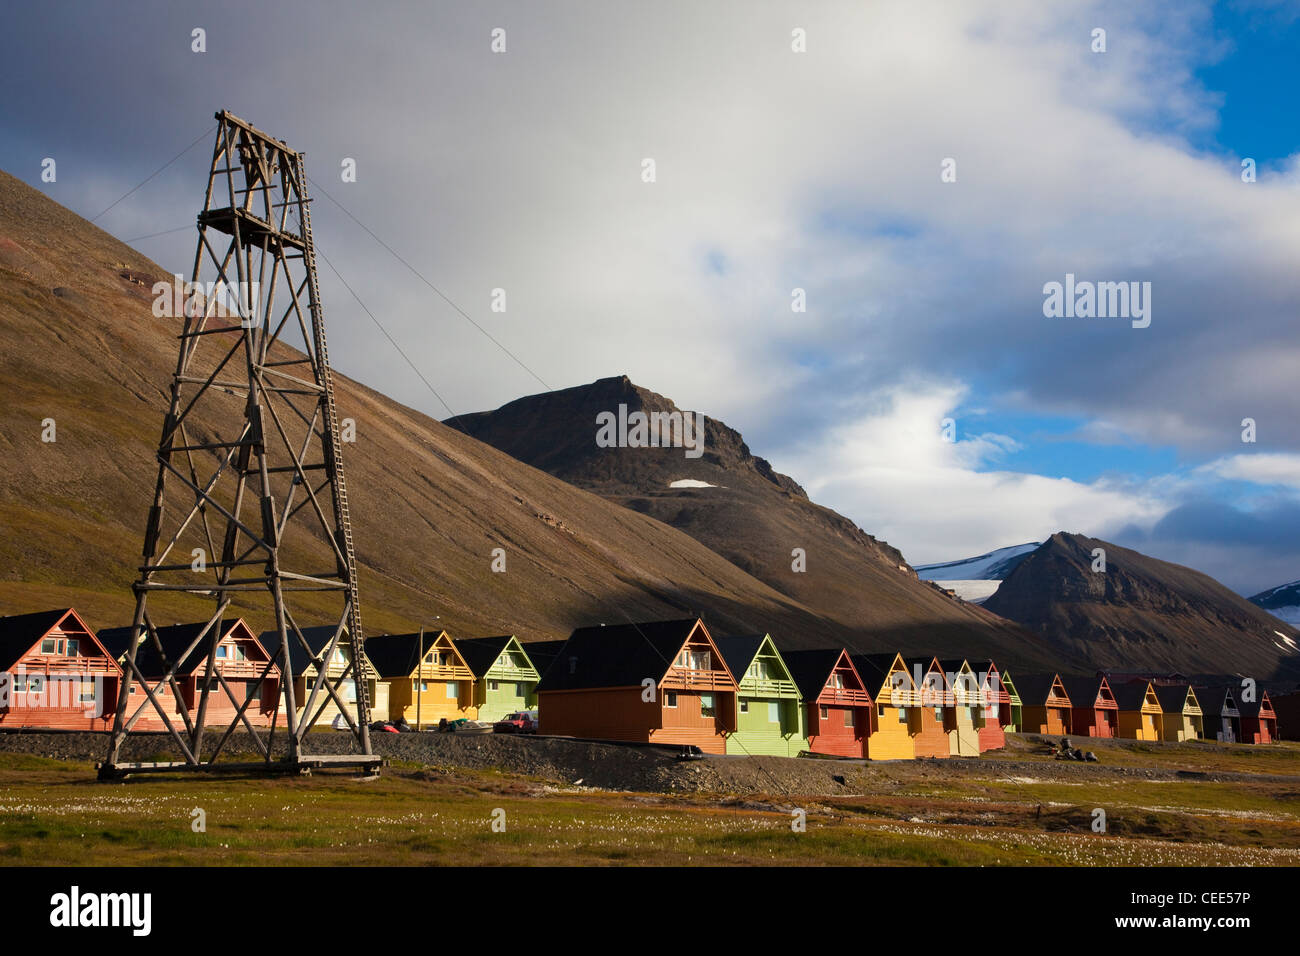 Wooden houses in Longyearbyen, the largest settlement of Svalbard archipelago, Norway. - Stock Image